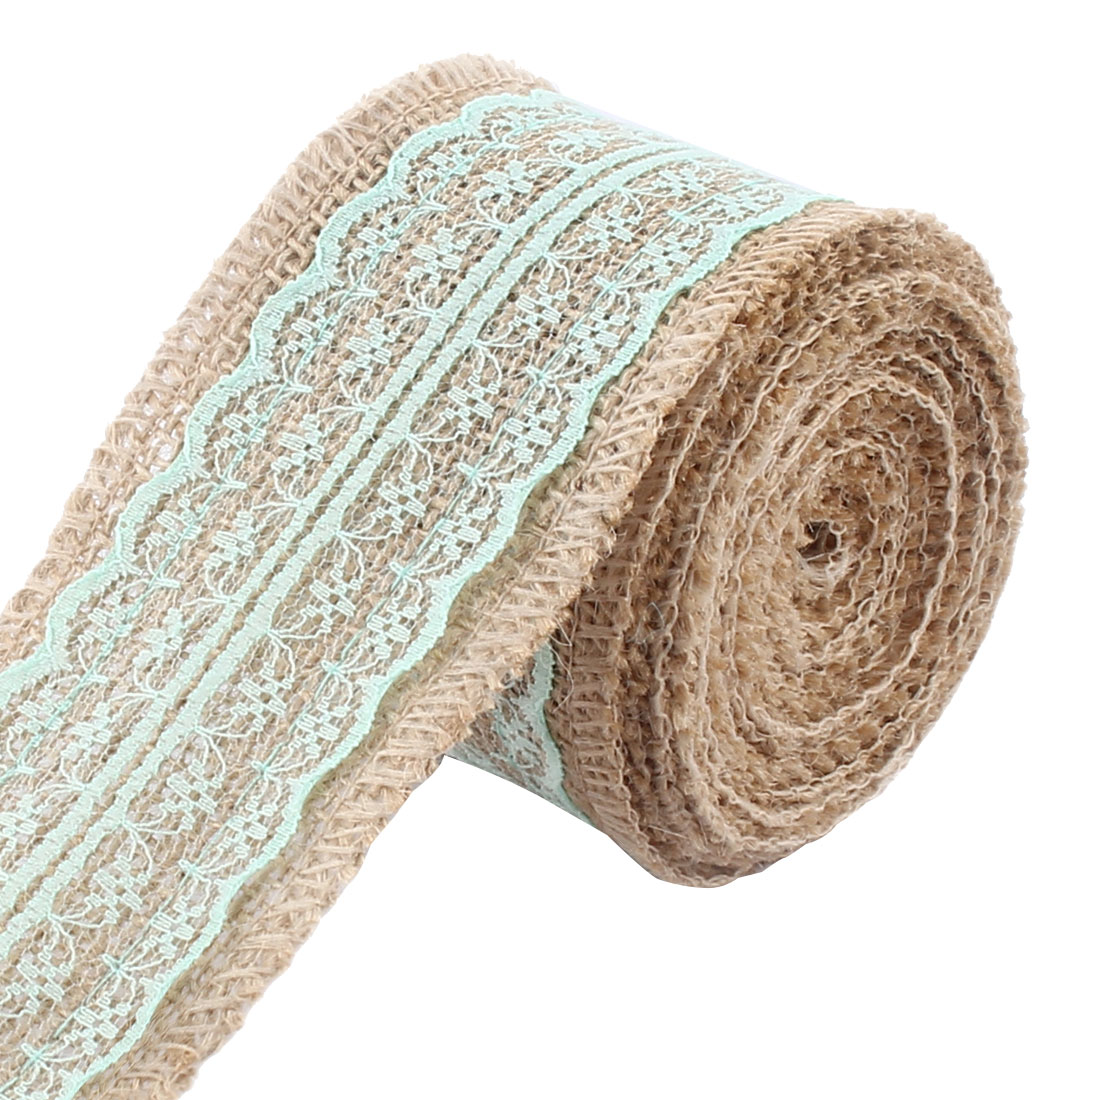 Unique Bargains Christmas Burlap DIY Gift Wrapping Packing Craft Ribbon Roll Pale Green